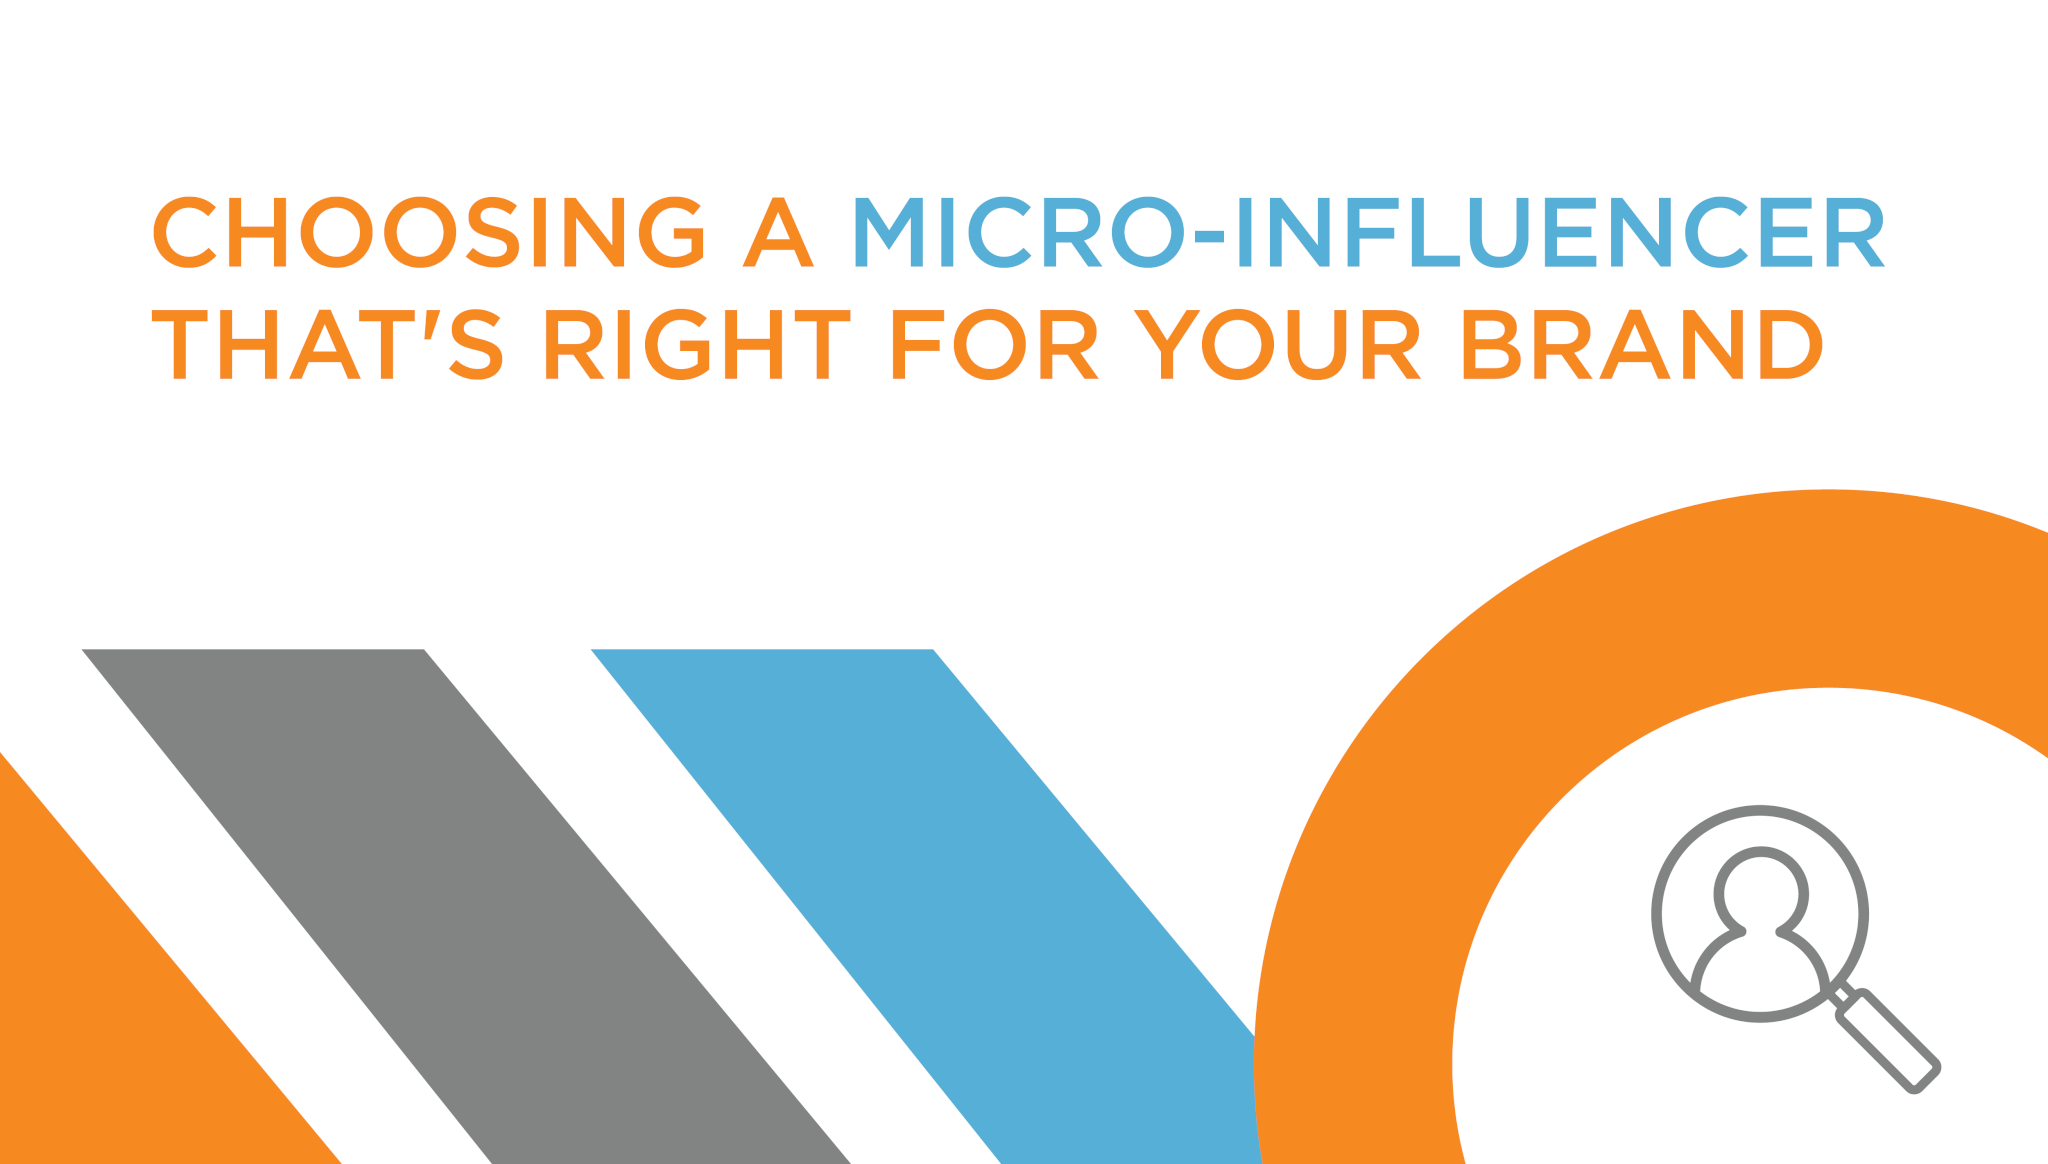 How to choose a micro-influencer that's right for your brand